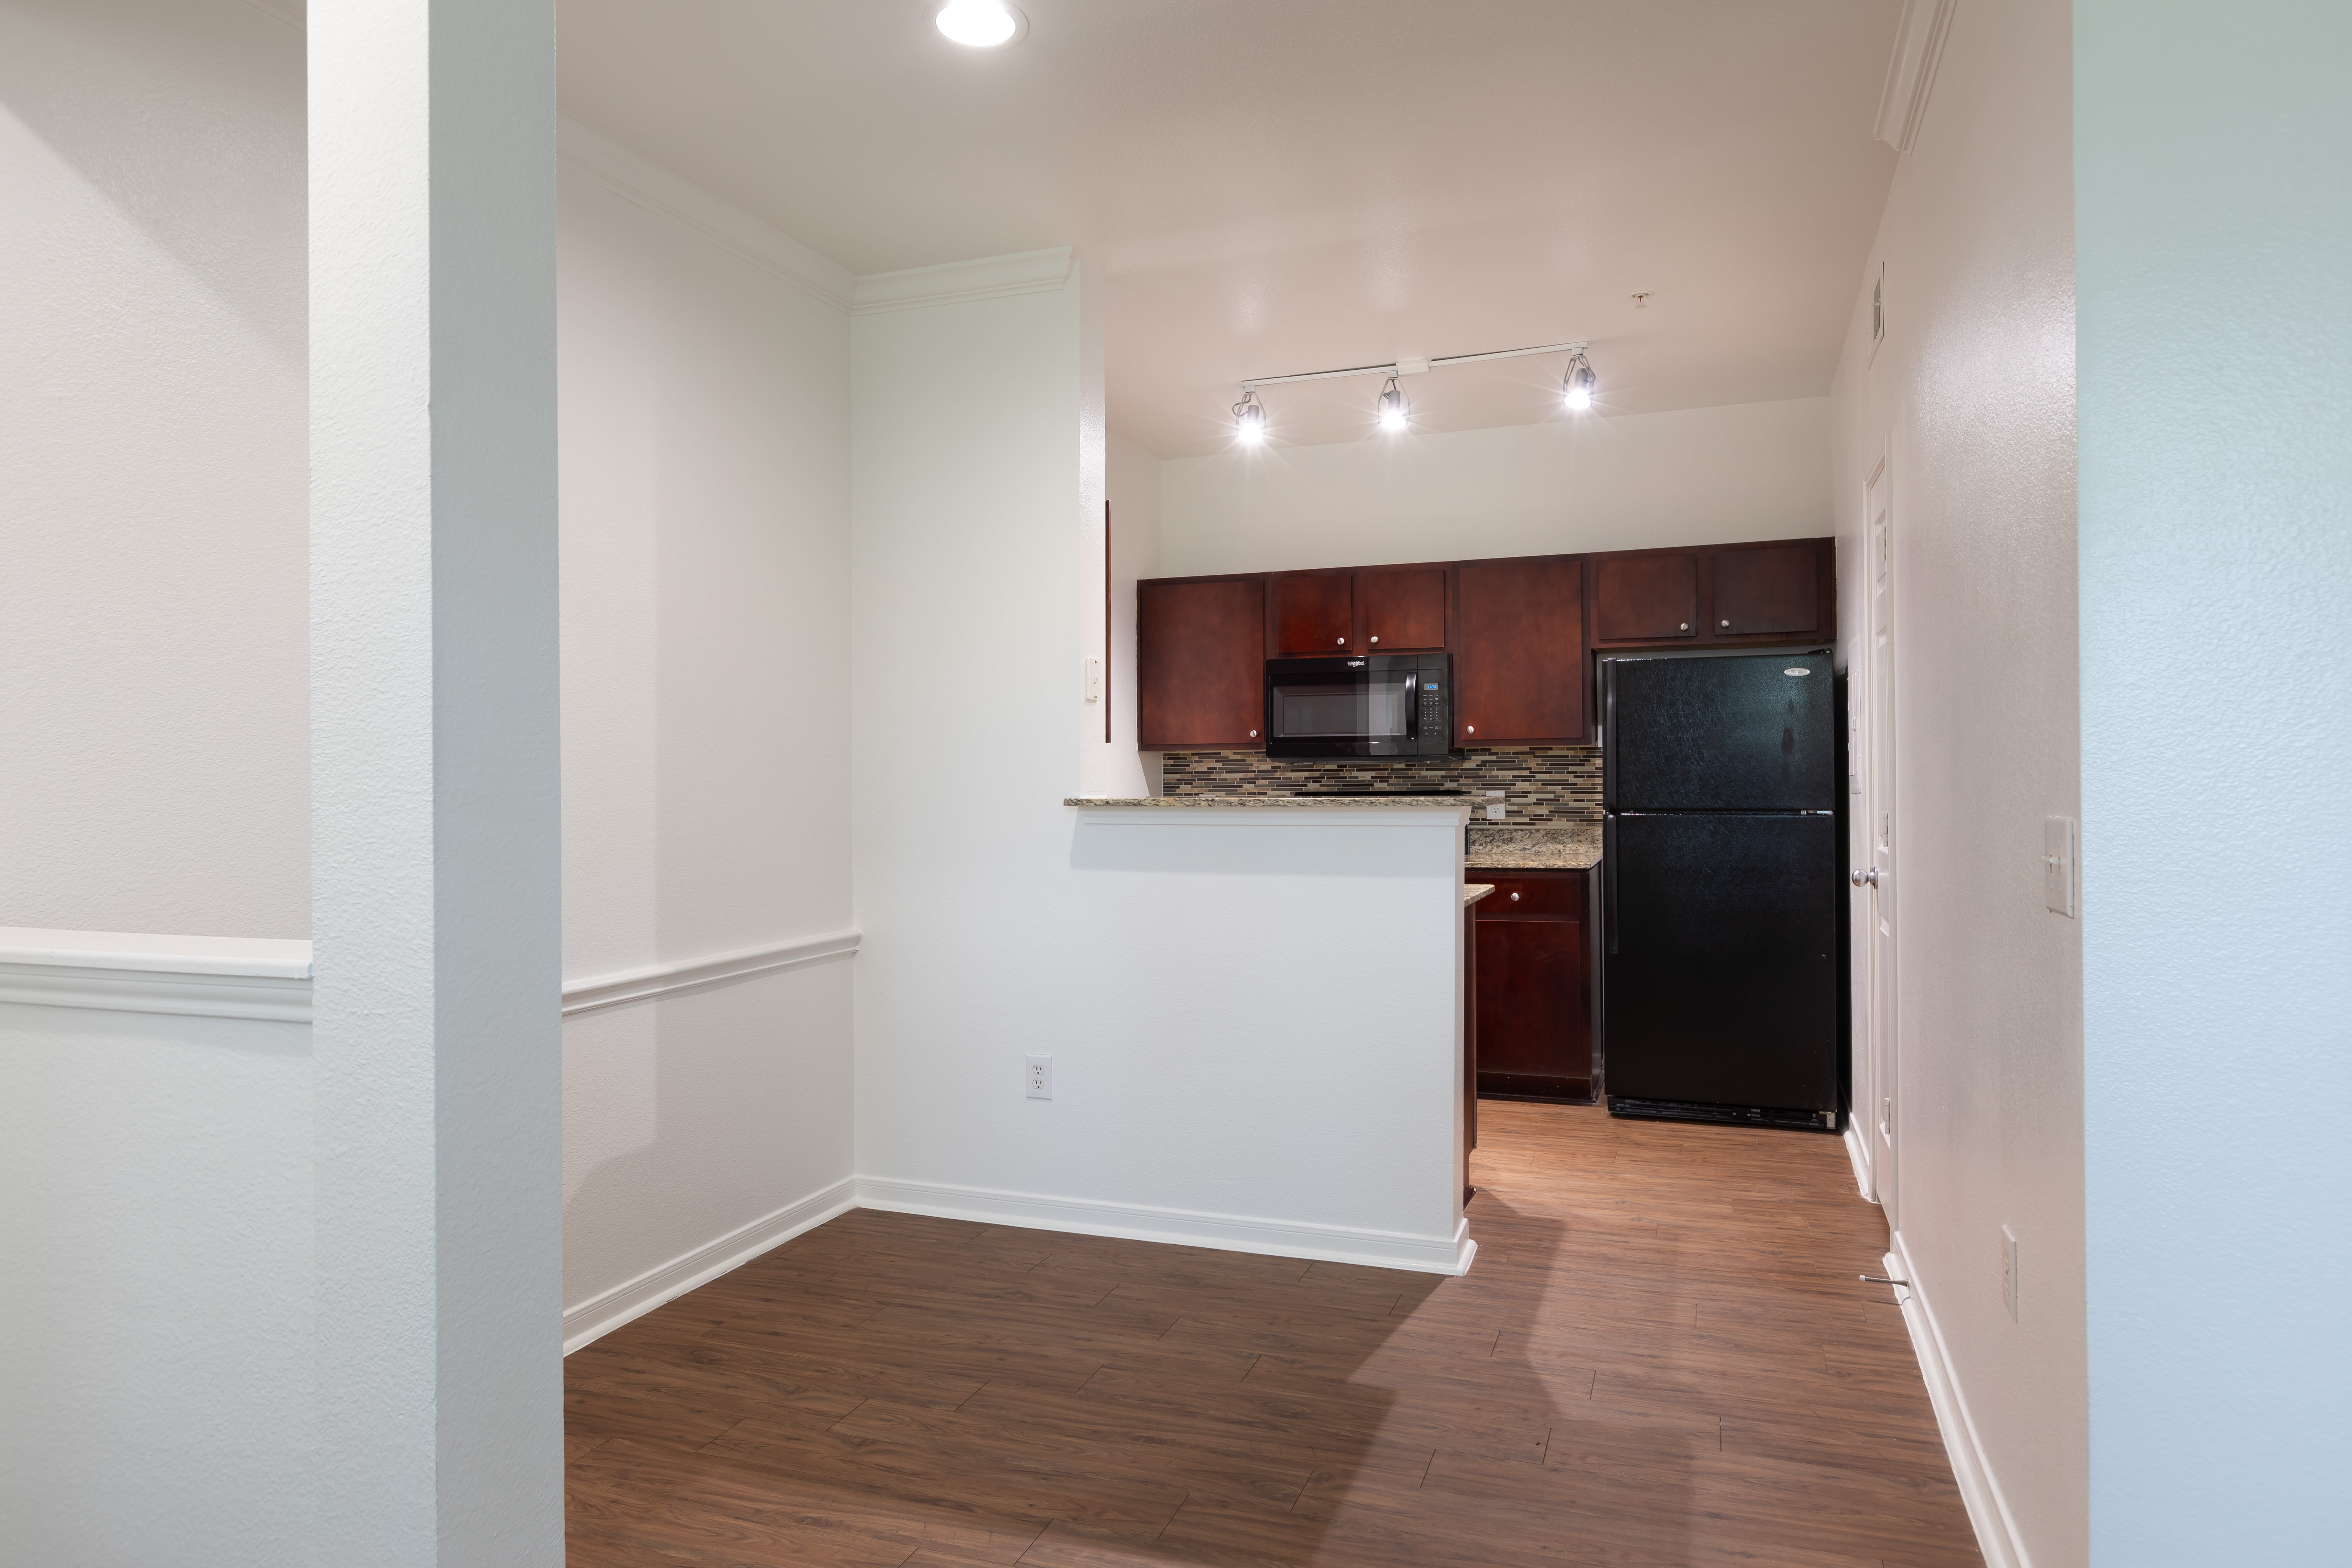 A modern unfurnished apartment at Stone Creek at The Woodlands in The Woodlands, Texas